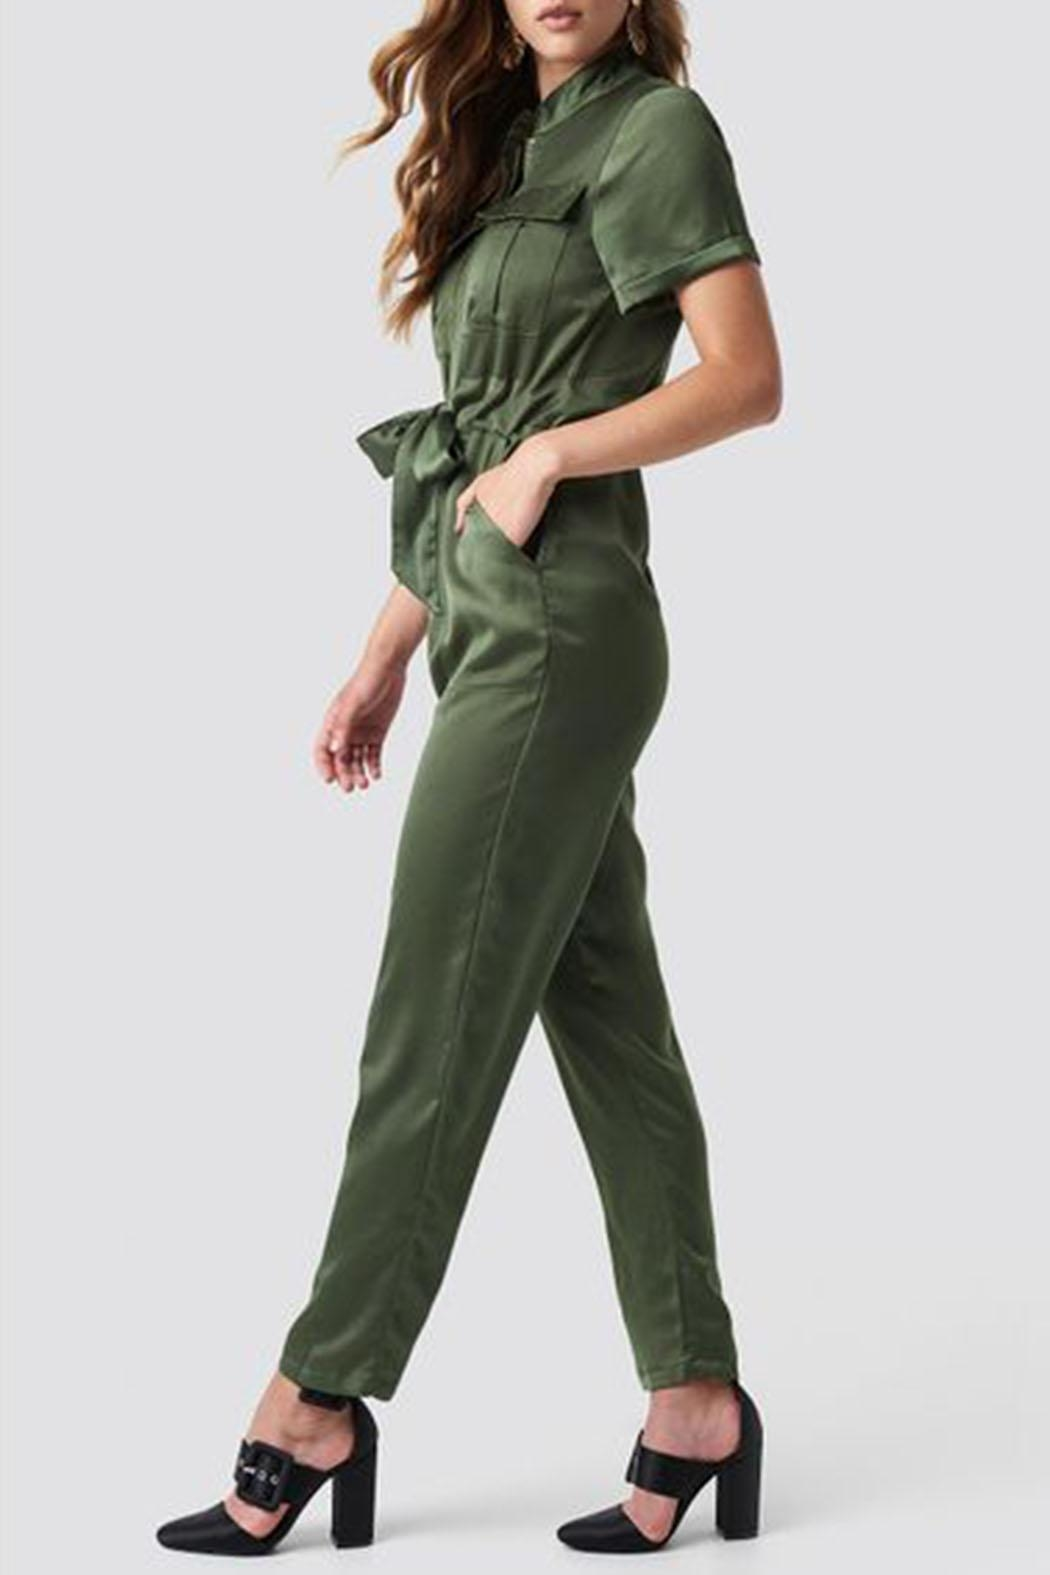 fe5ac2e04f395 Glamorous Khaki Jumpsuit from Canada by Envy — Shoptiques